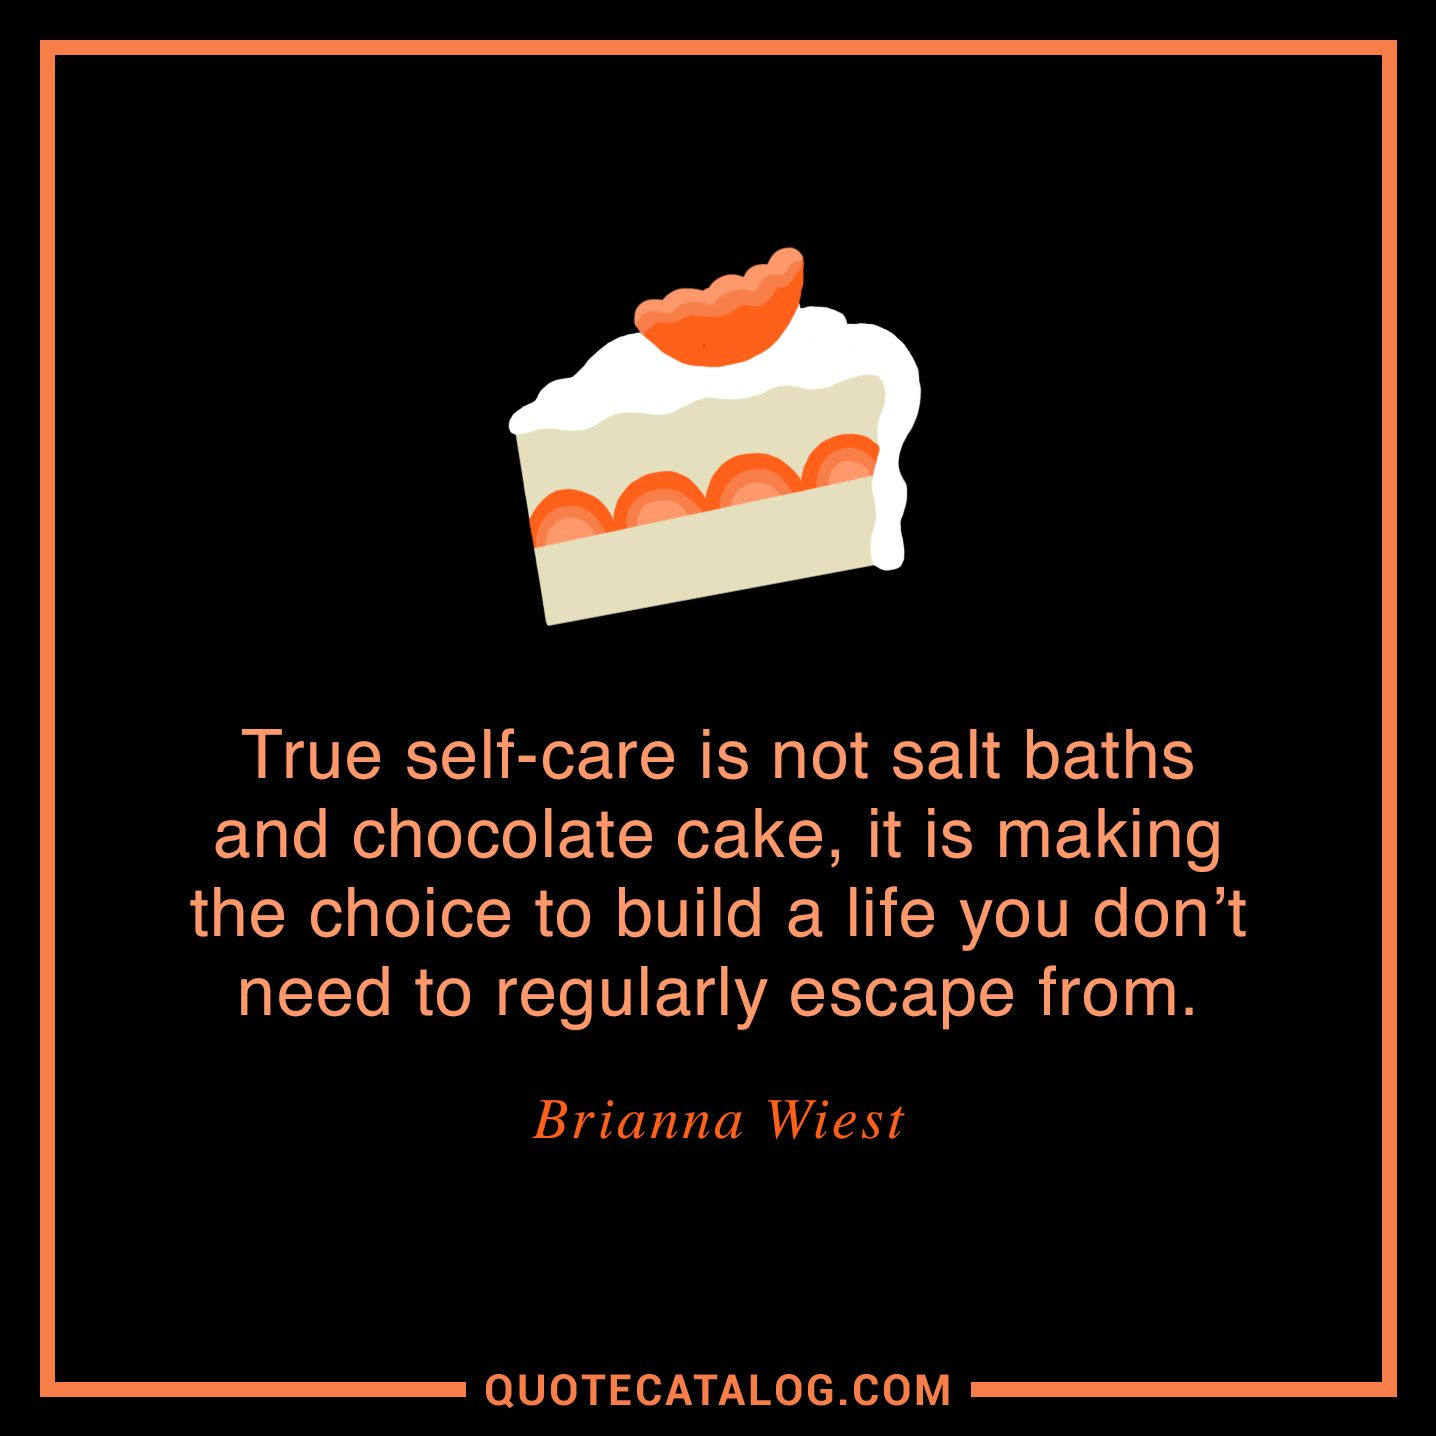 brianna wiest quote true self care is not salt baths and cho